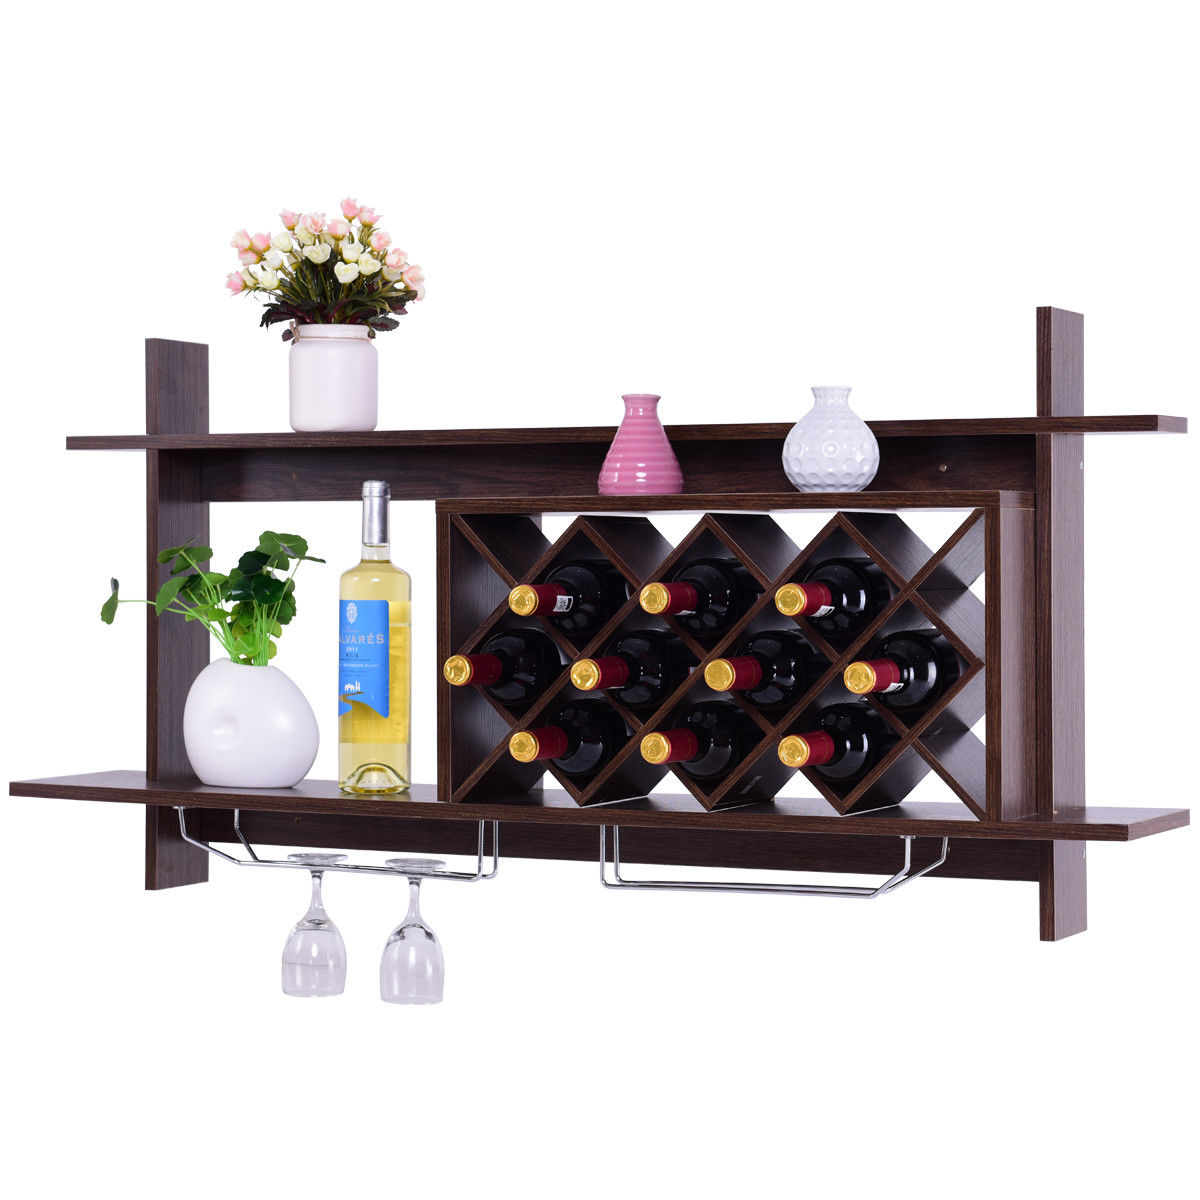 Gymax Wall Mount Wine Rack Organizer With Glass Holder & Storage Shelf Home Decor